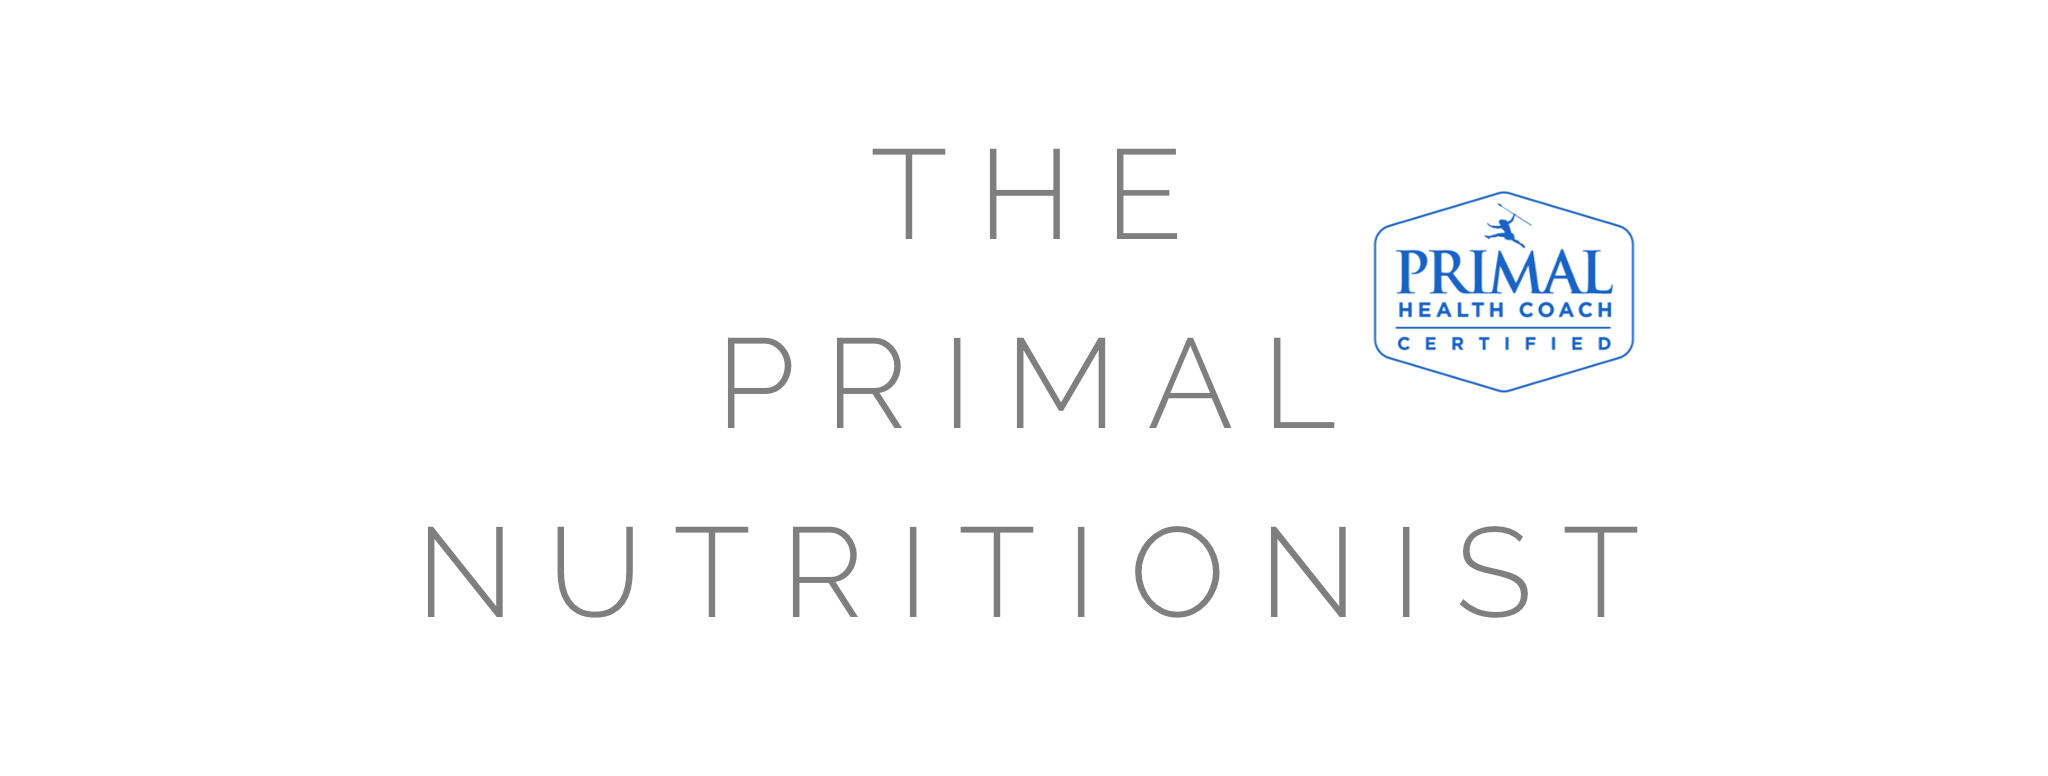 Primal guernsey the primal nutritionist malvernweather Choice Image